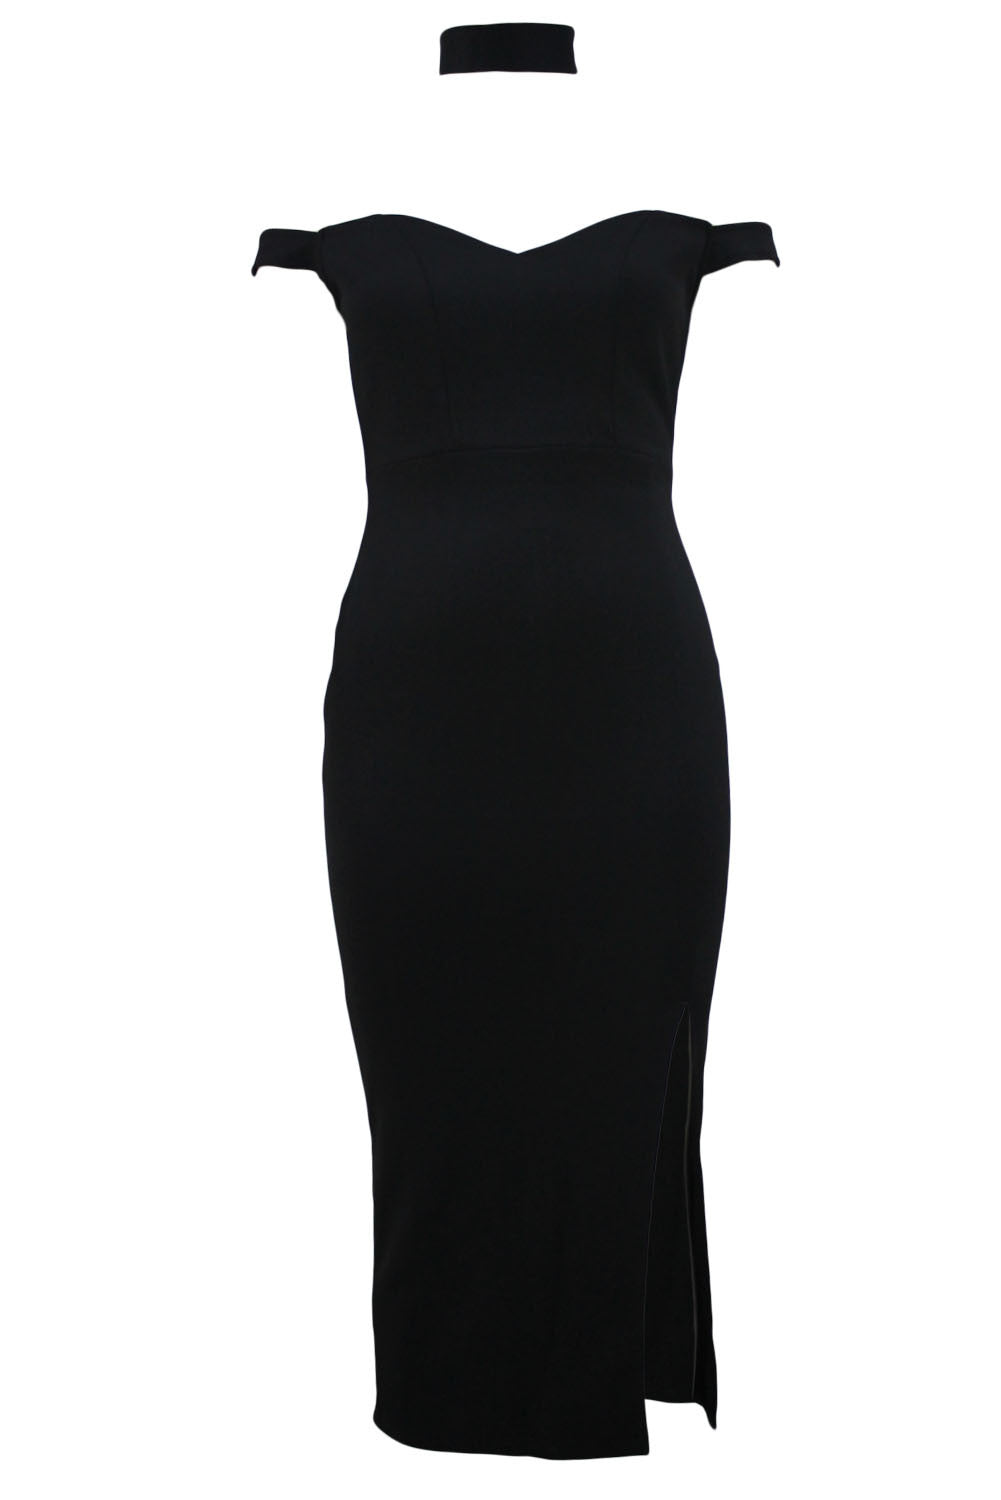 Her Styling Black Luxurious Trendy Long Party Dress with Choker